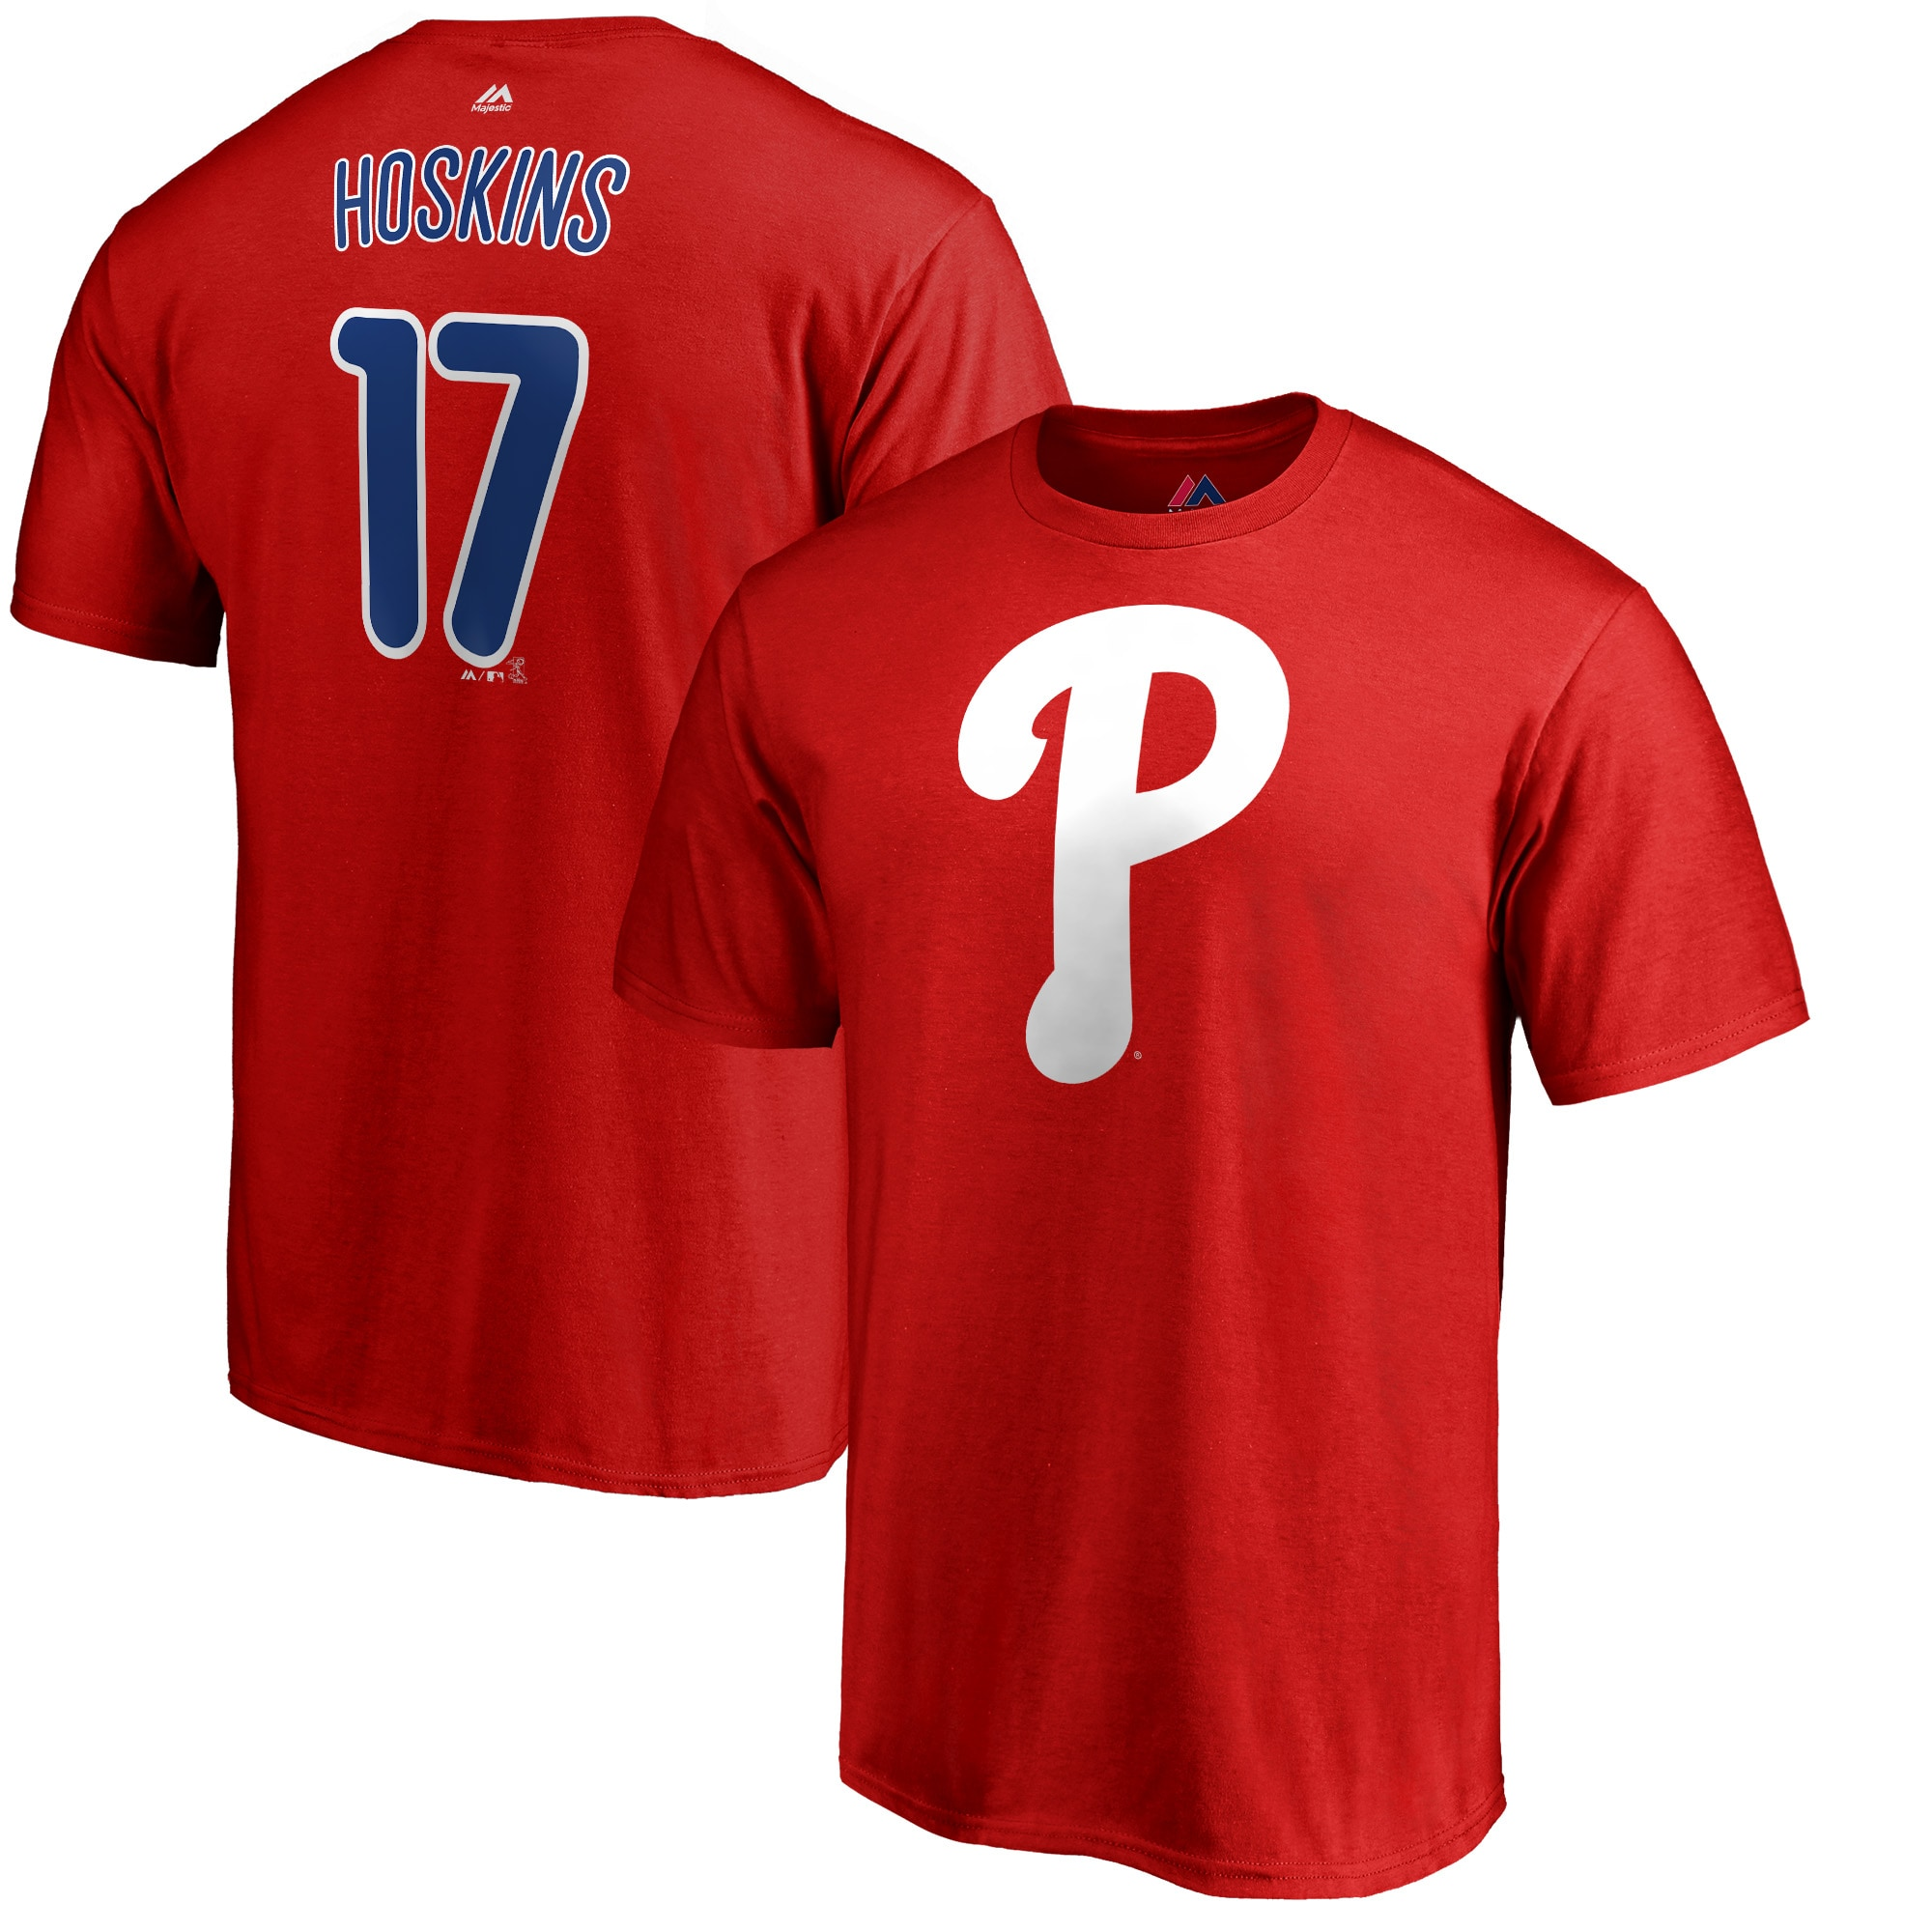 Rhys Hoskins Philadelphia Phillies Majestic Double Play Cap Logo Name & Number T-Shirt - Red